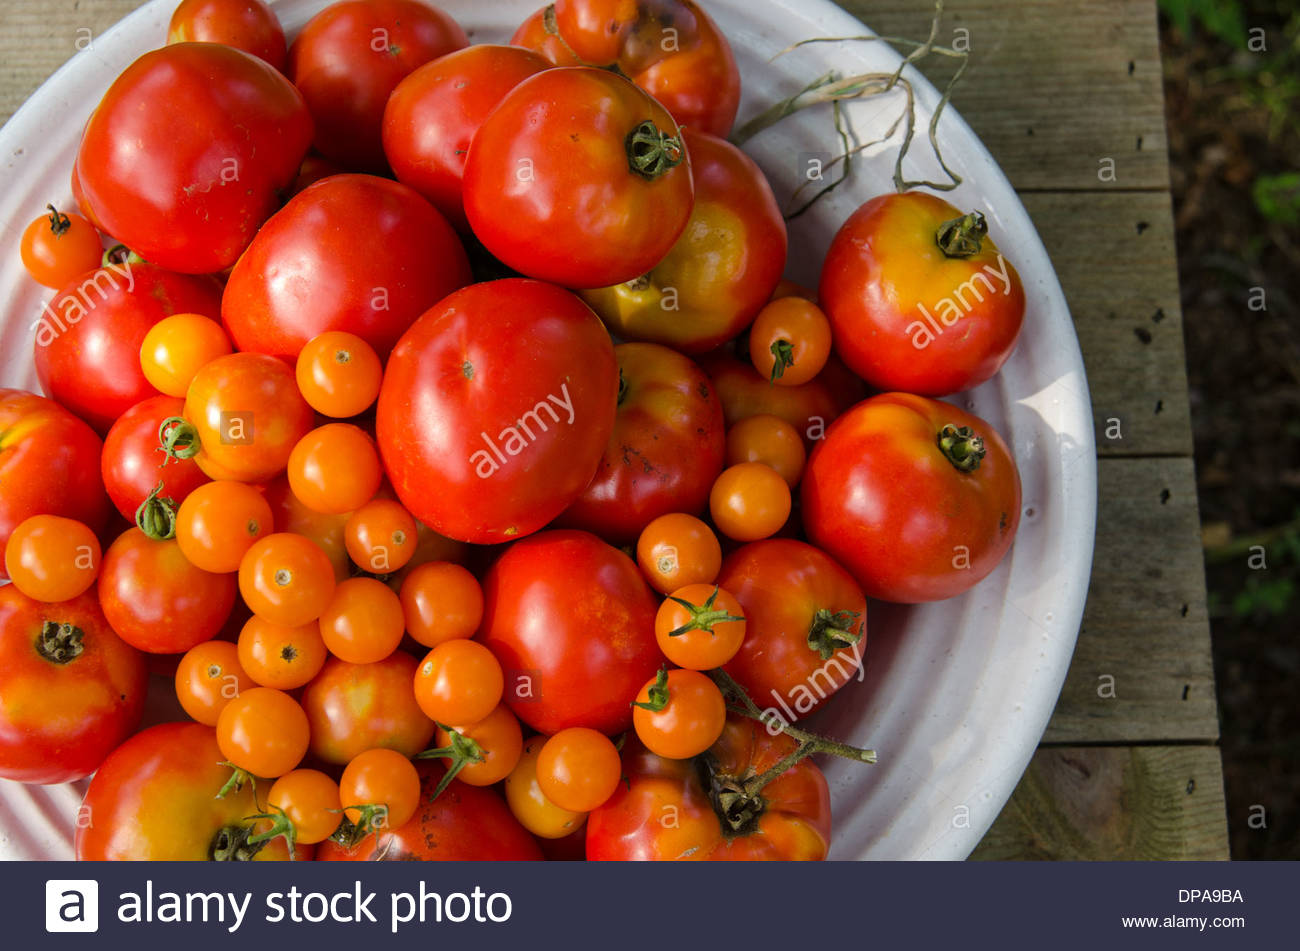 Close-up of dish of freshly picked garden tomatoes of different sizes outdoors on wooden table. - Stock Image